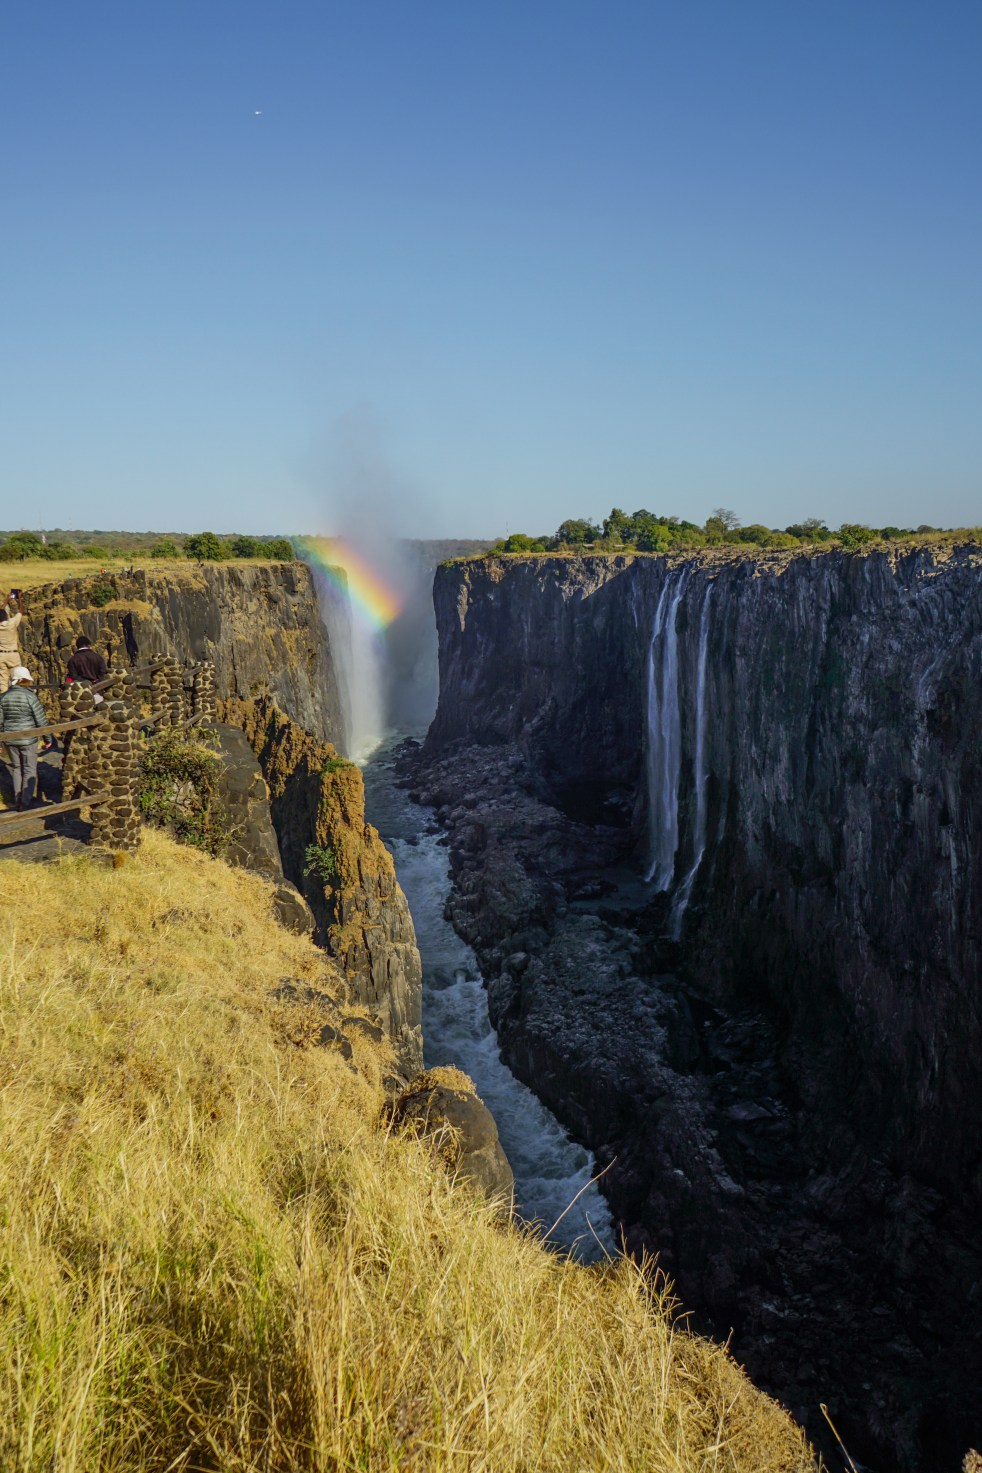 Rainbow over Zambian side of Victoria Falls